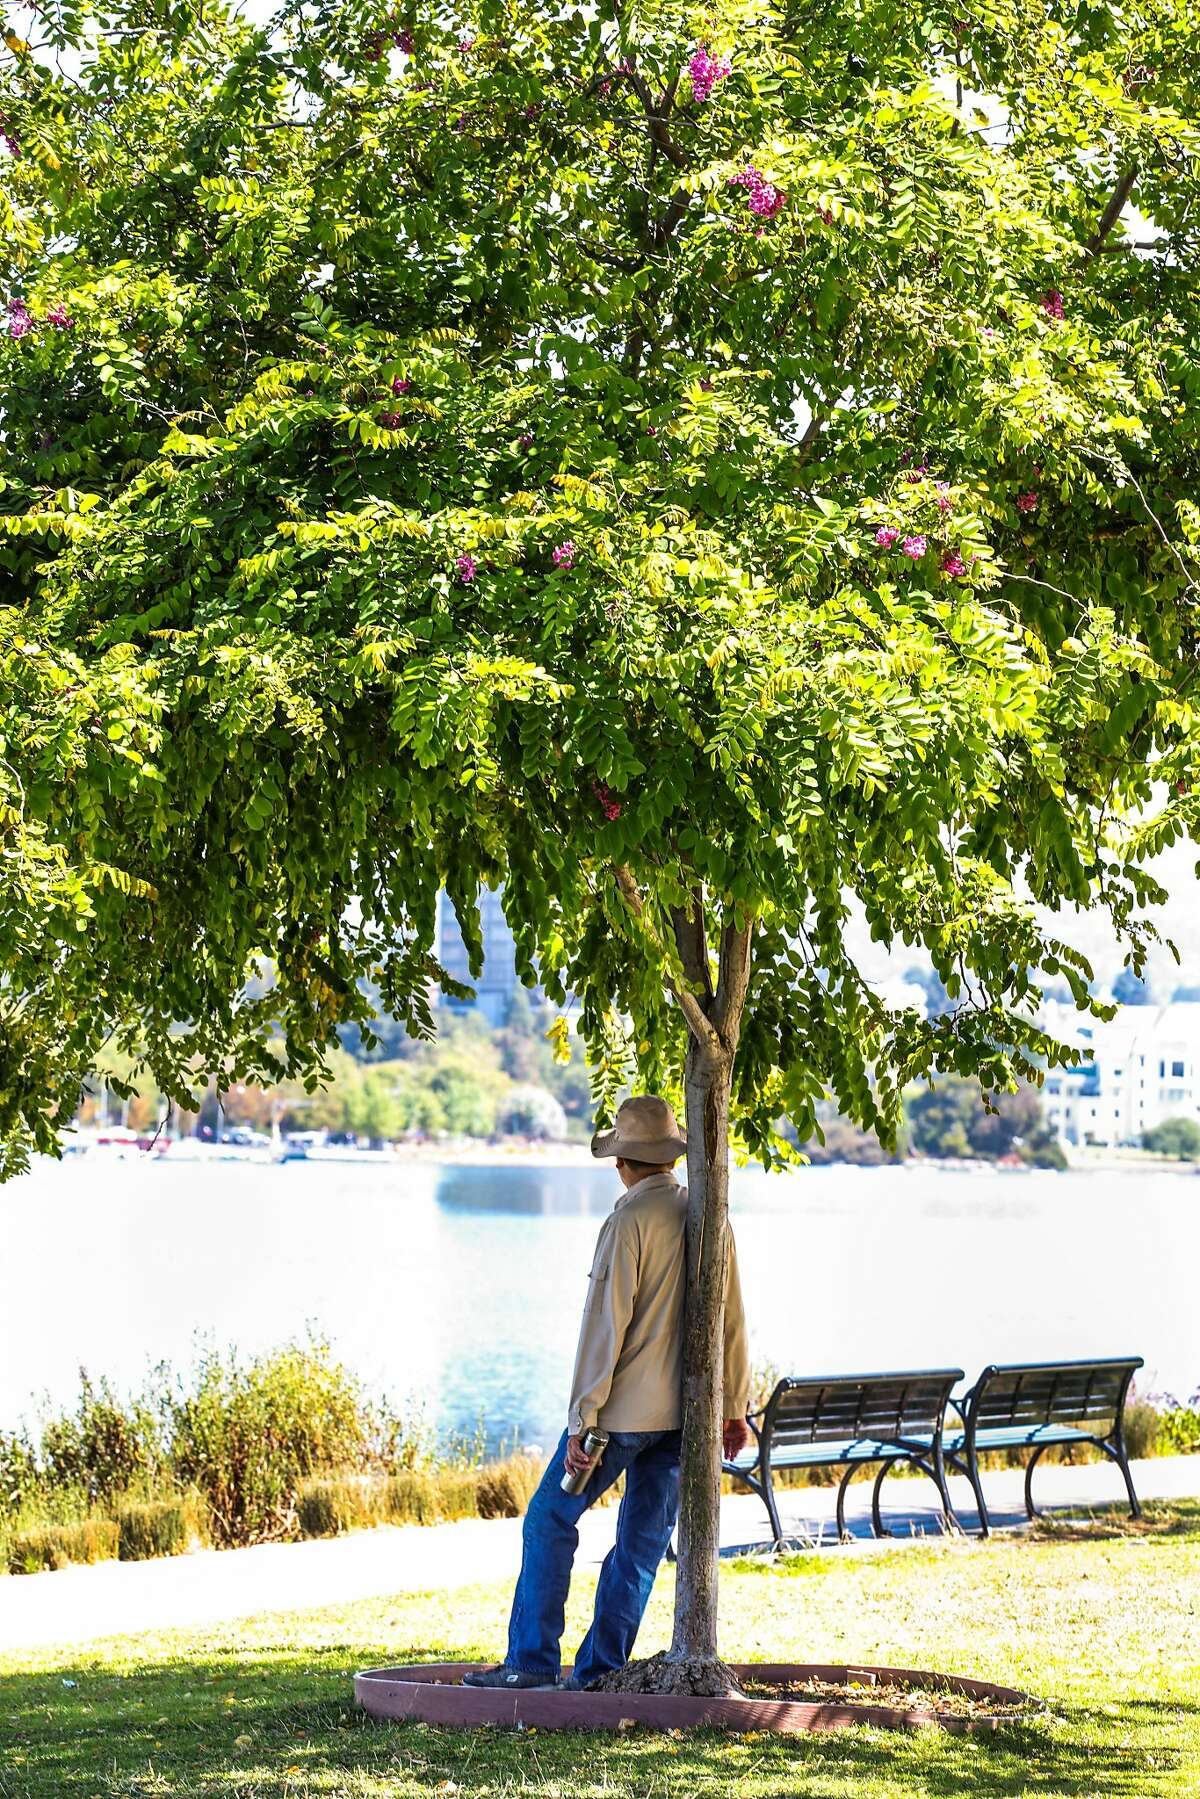 A man takes rest in the shade at Lake Merritt in Oakland, California, on Monday, July 23, 2018.